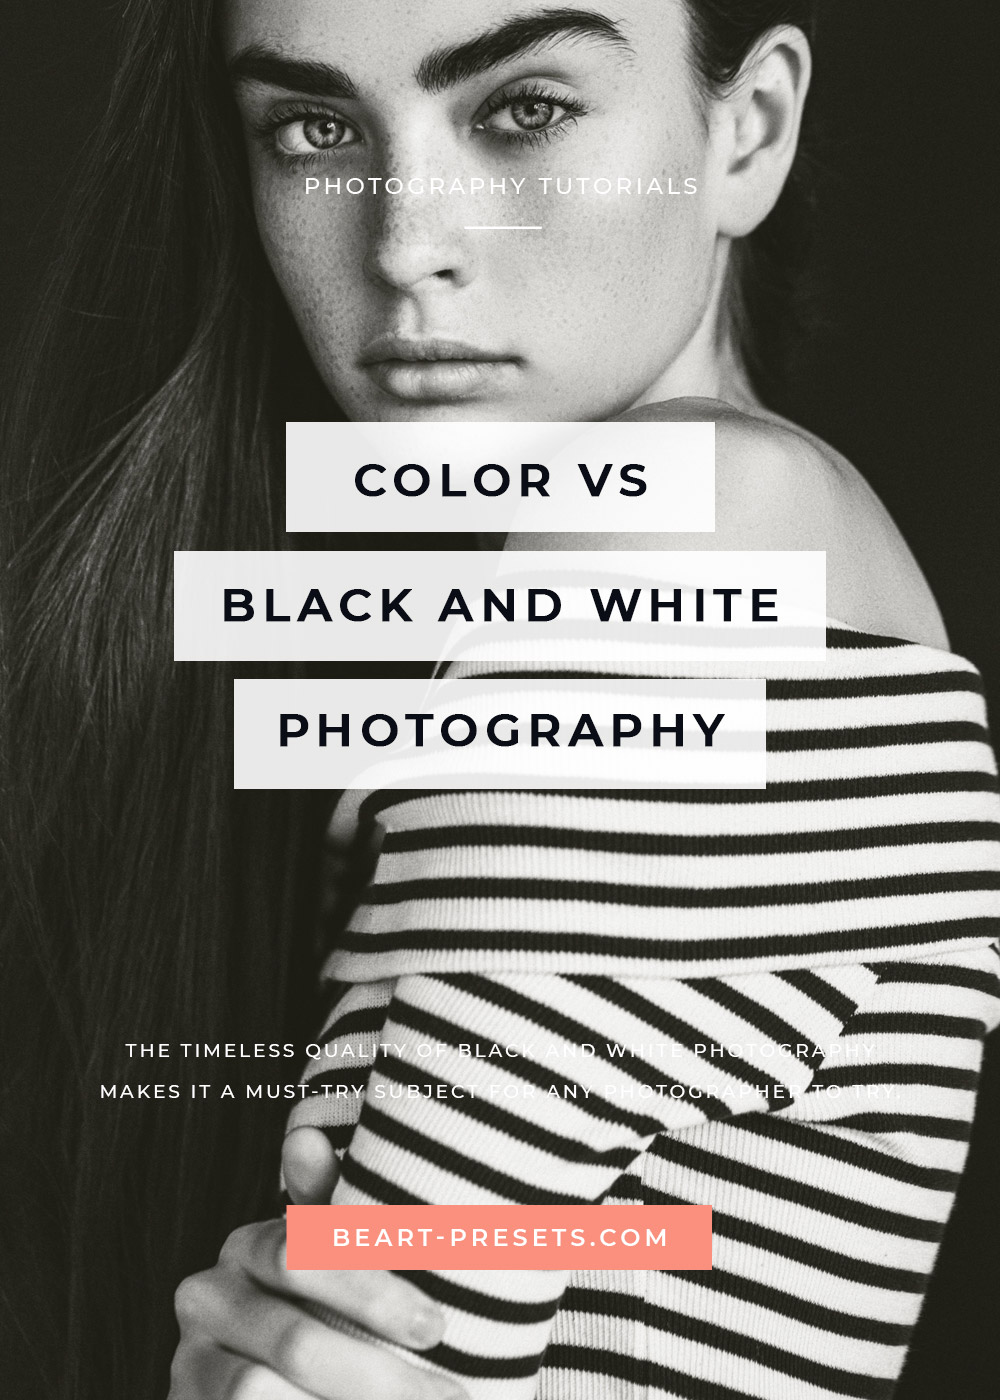 Color-vs-black-and-white-photography